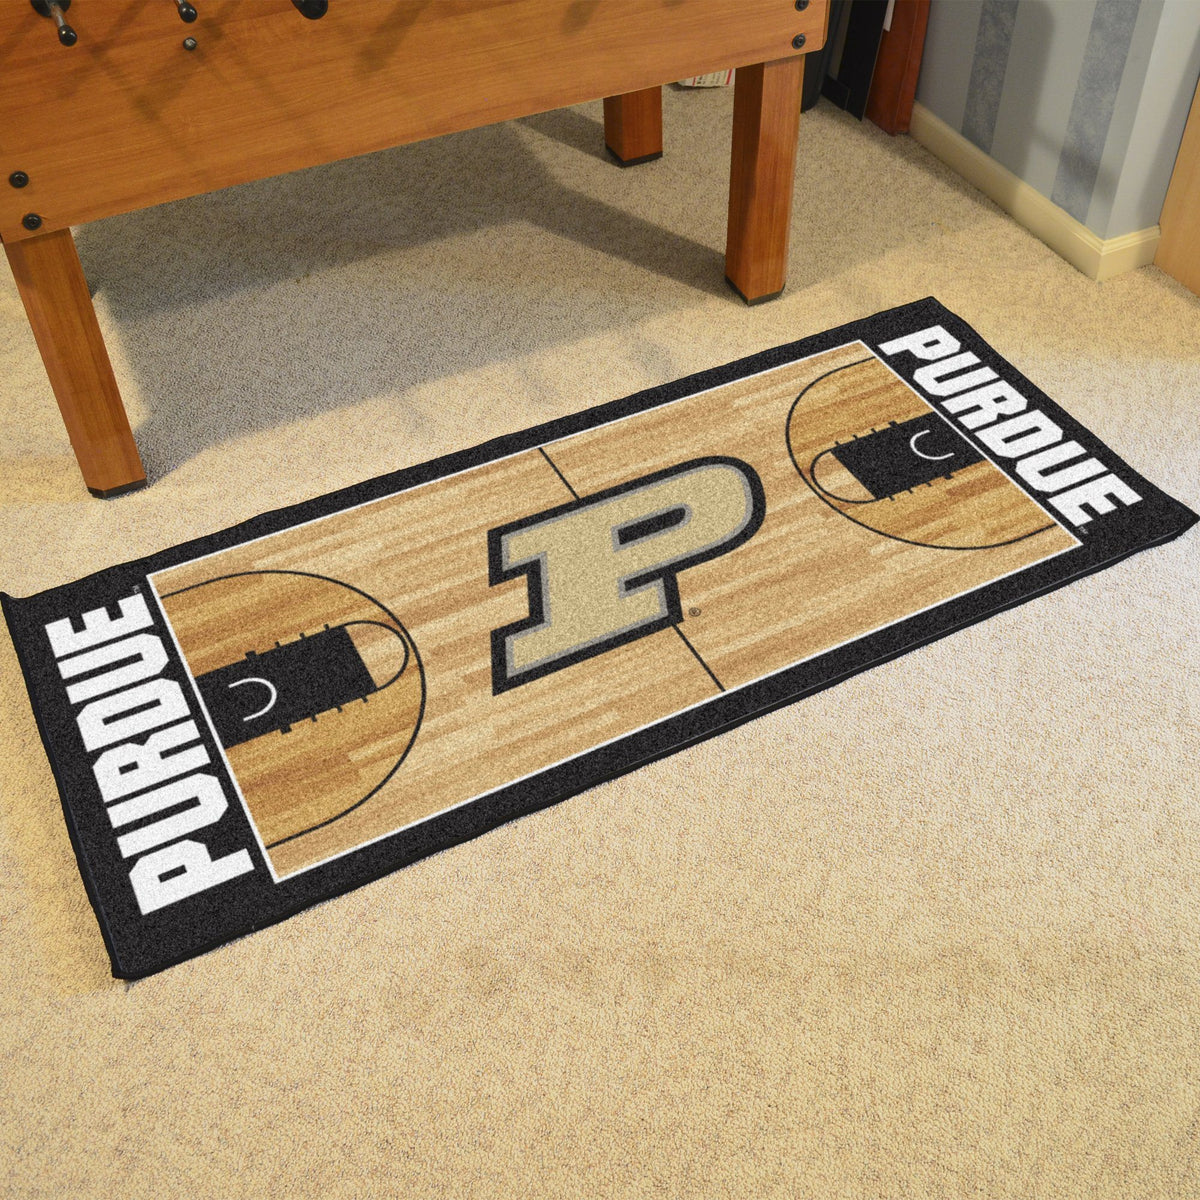 Collegiate - NCAA Basketball Runner Collegiate Mats, Rectangular Mats, NCAA Basketball Runner, Collegiate, Home Fan Mats Purdue